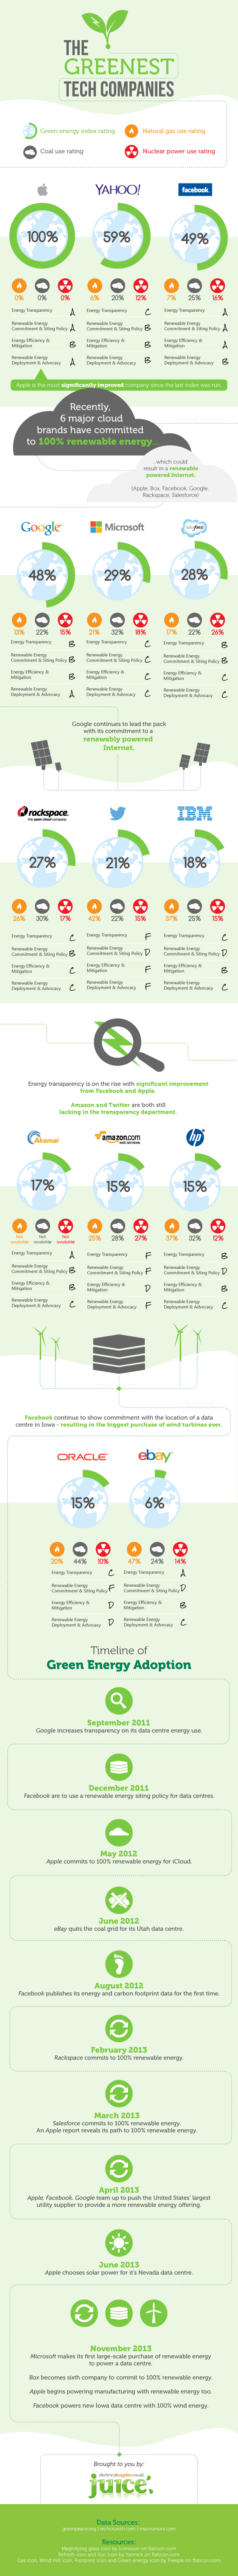 Greenest tech companies infographic by Juice Electrical Supplies